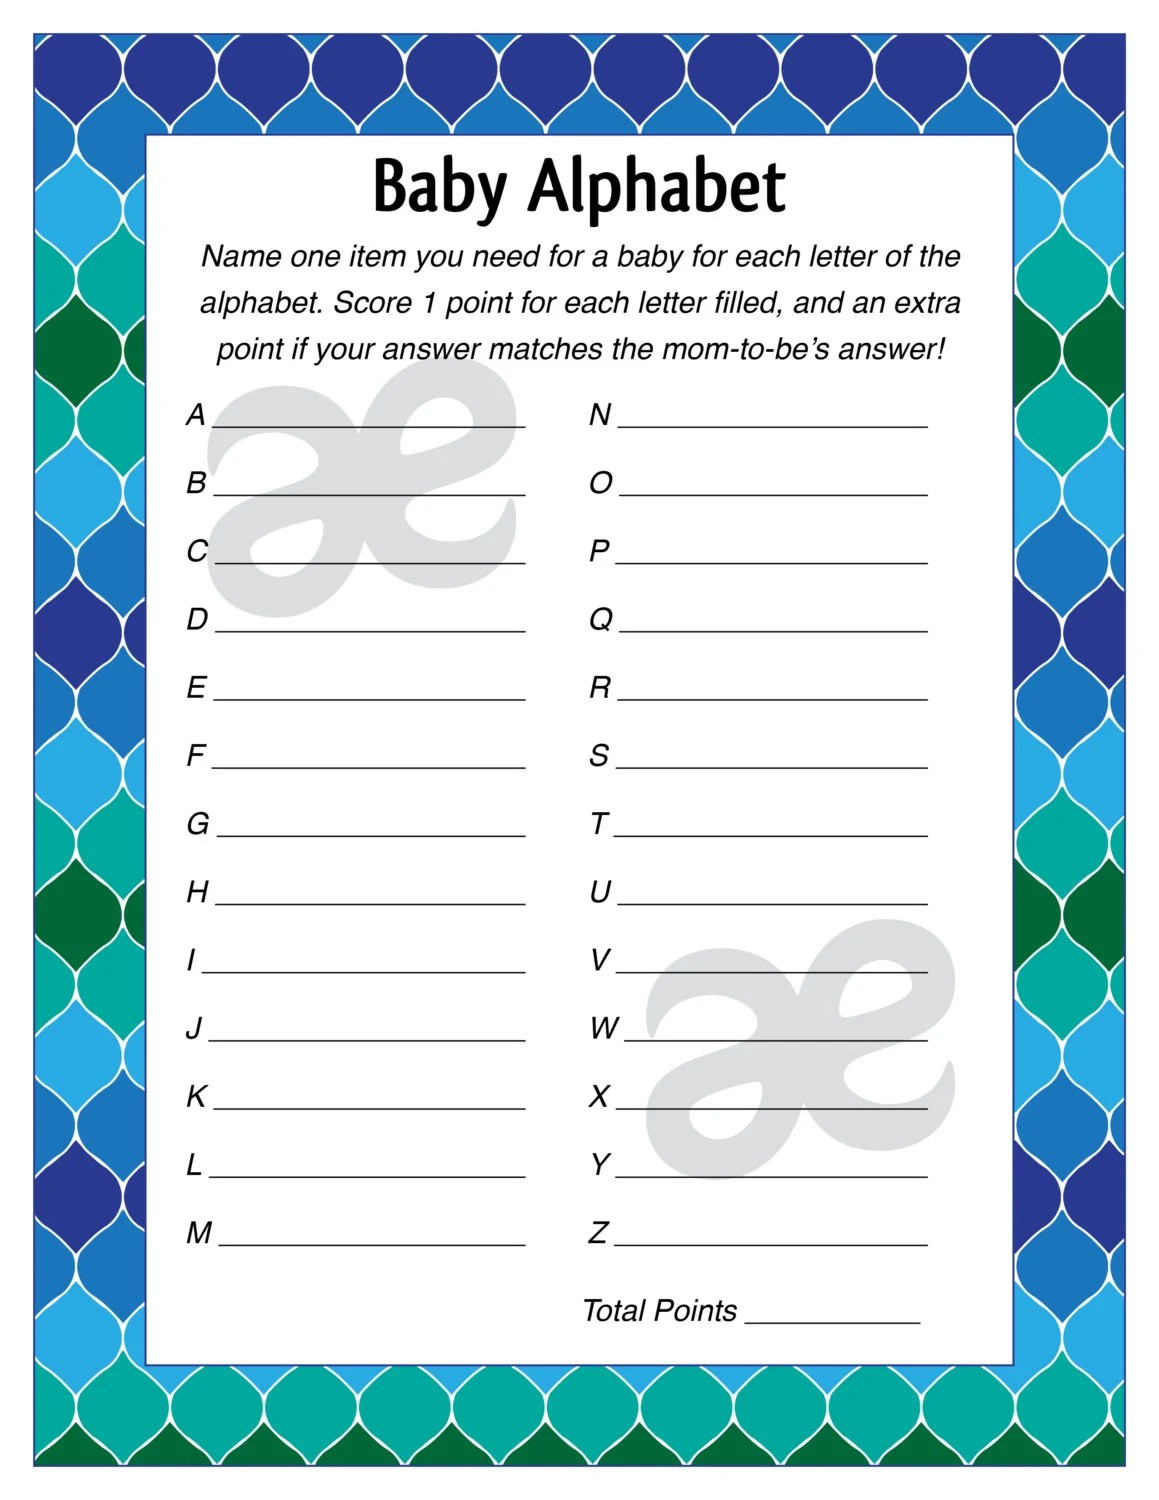 Baby Items Alphabet : items, alphabet, Printable, Shower, Game:, Alphabet, Instant, Download